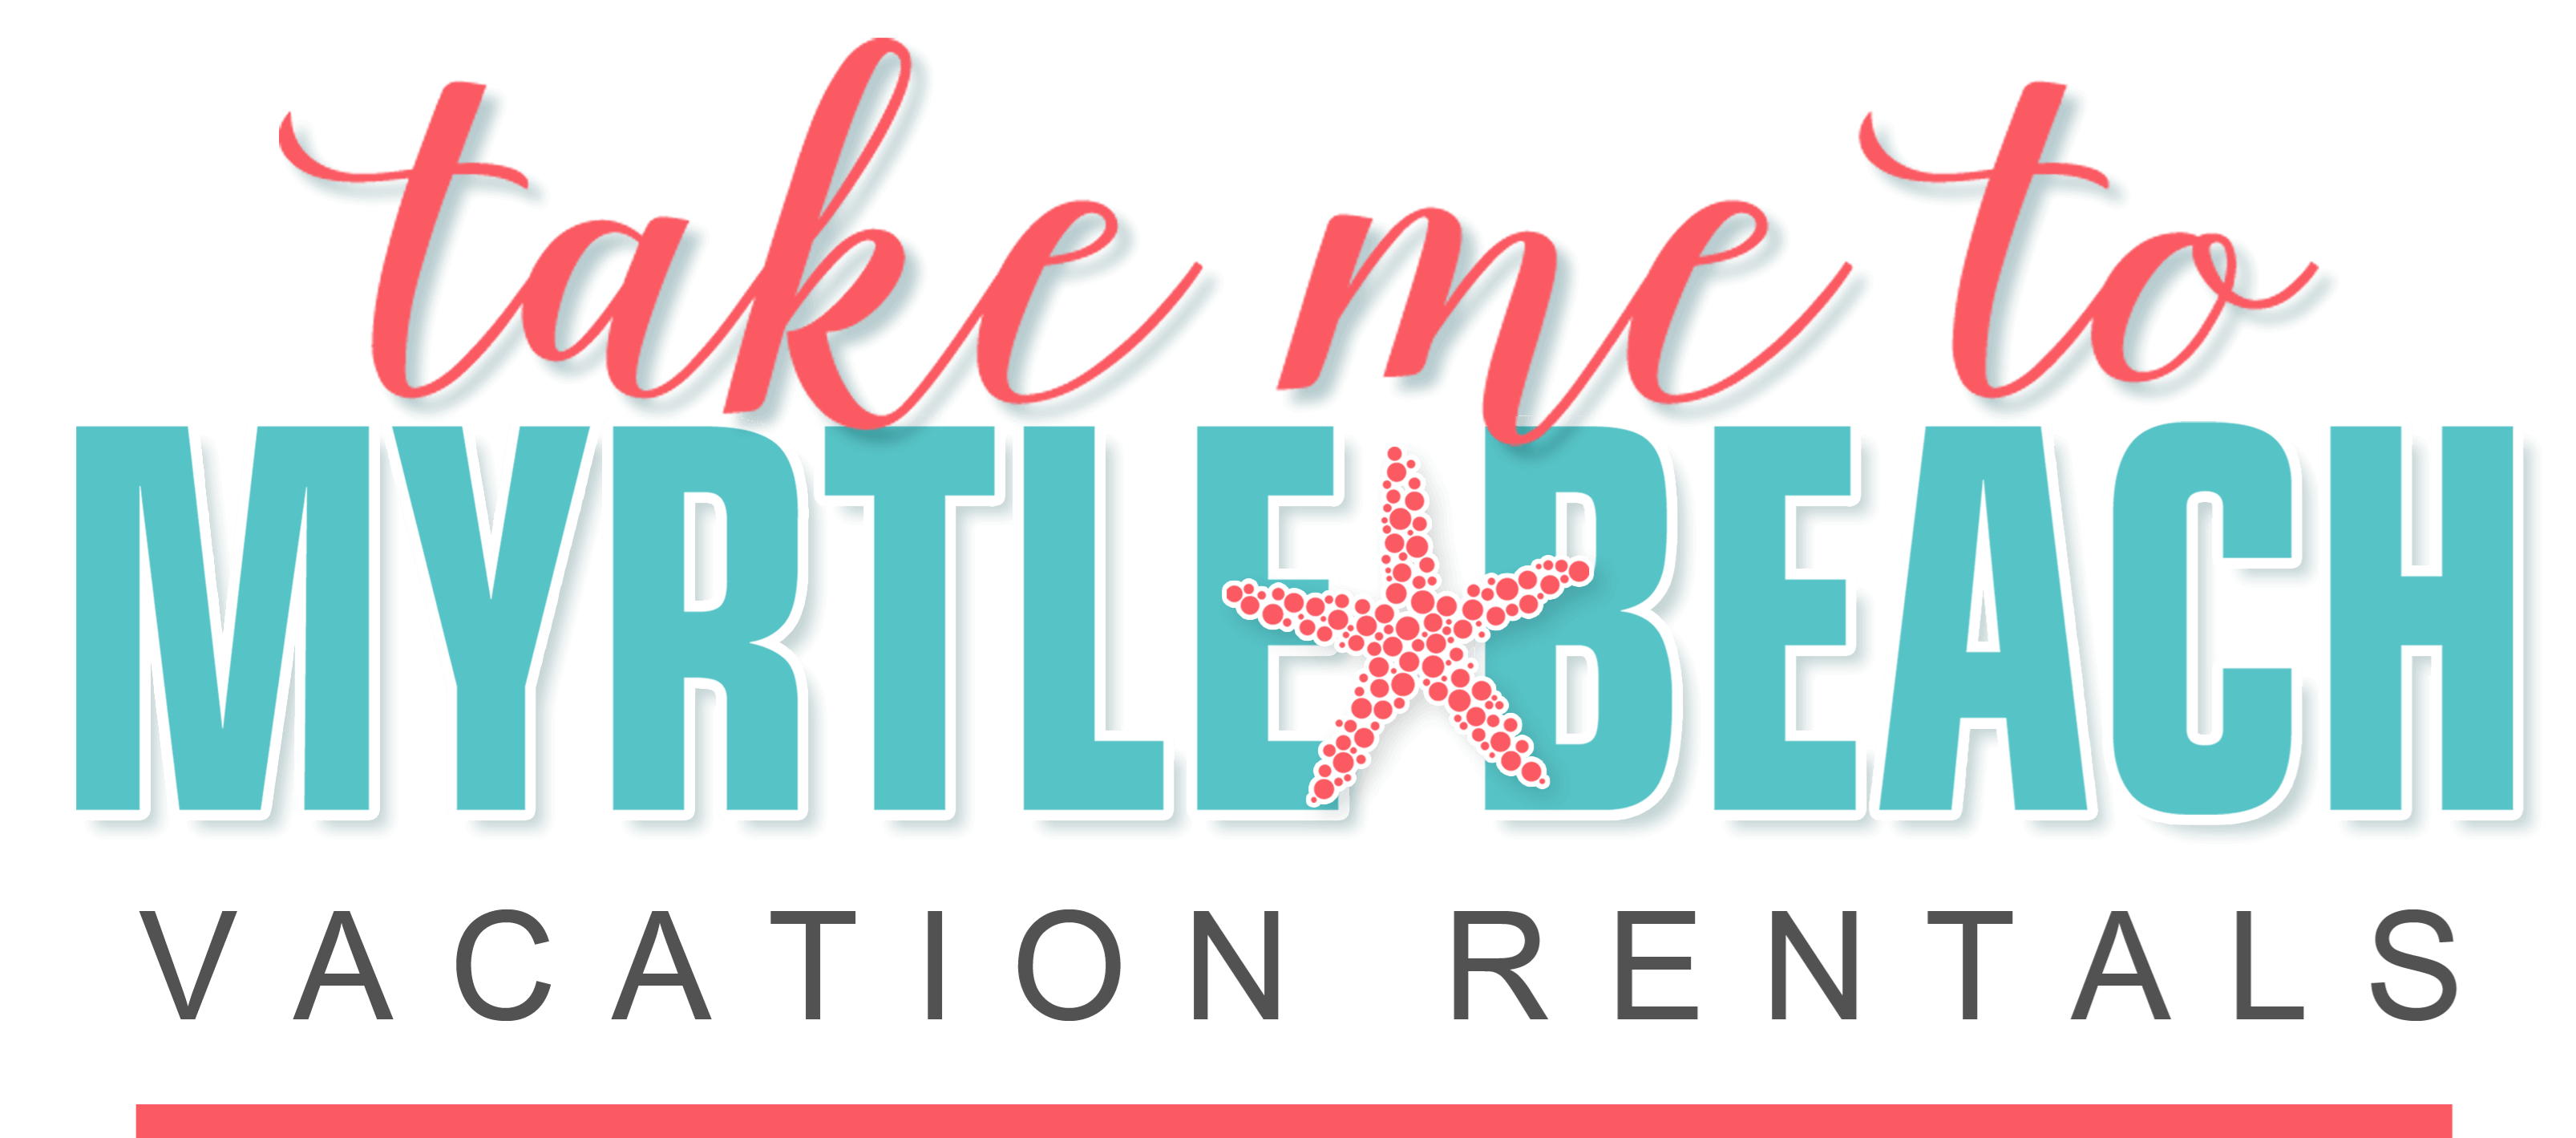 Vacation Condo Rentals in Myrtle Beach, SC